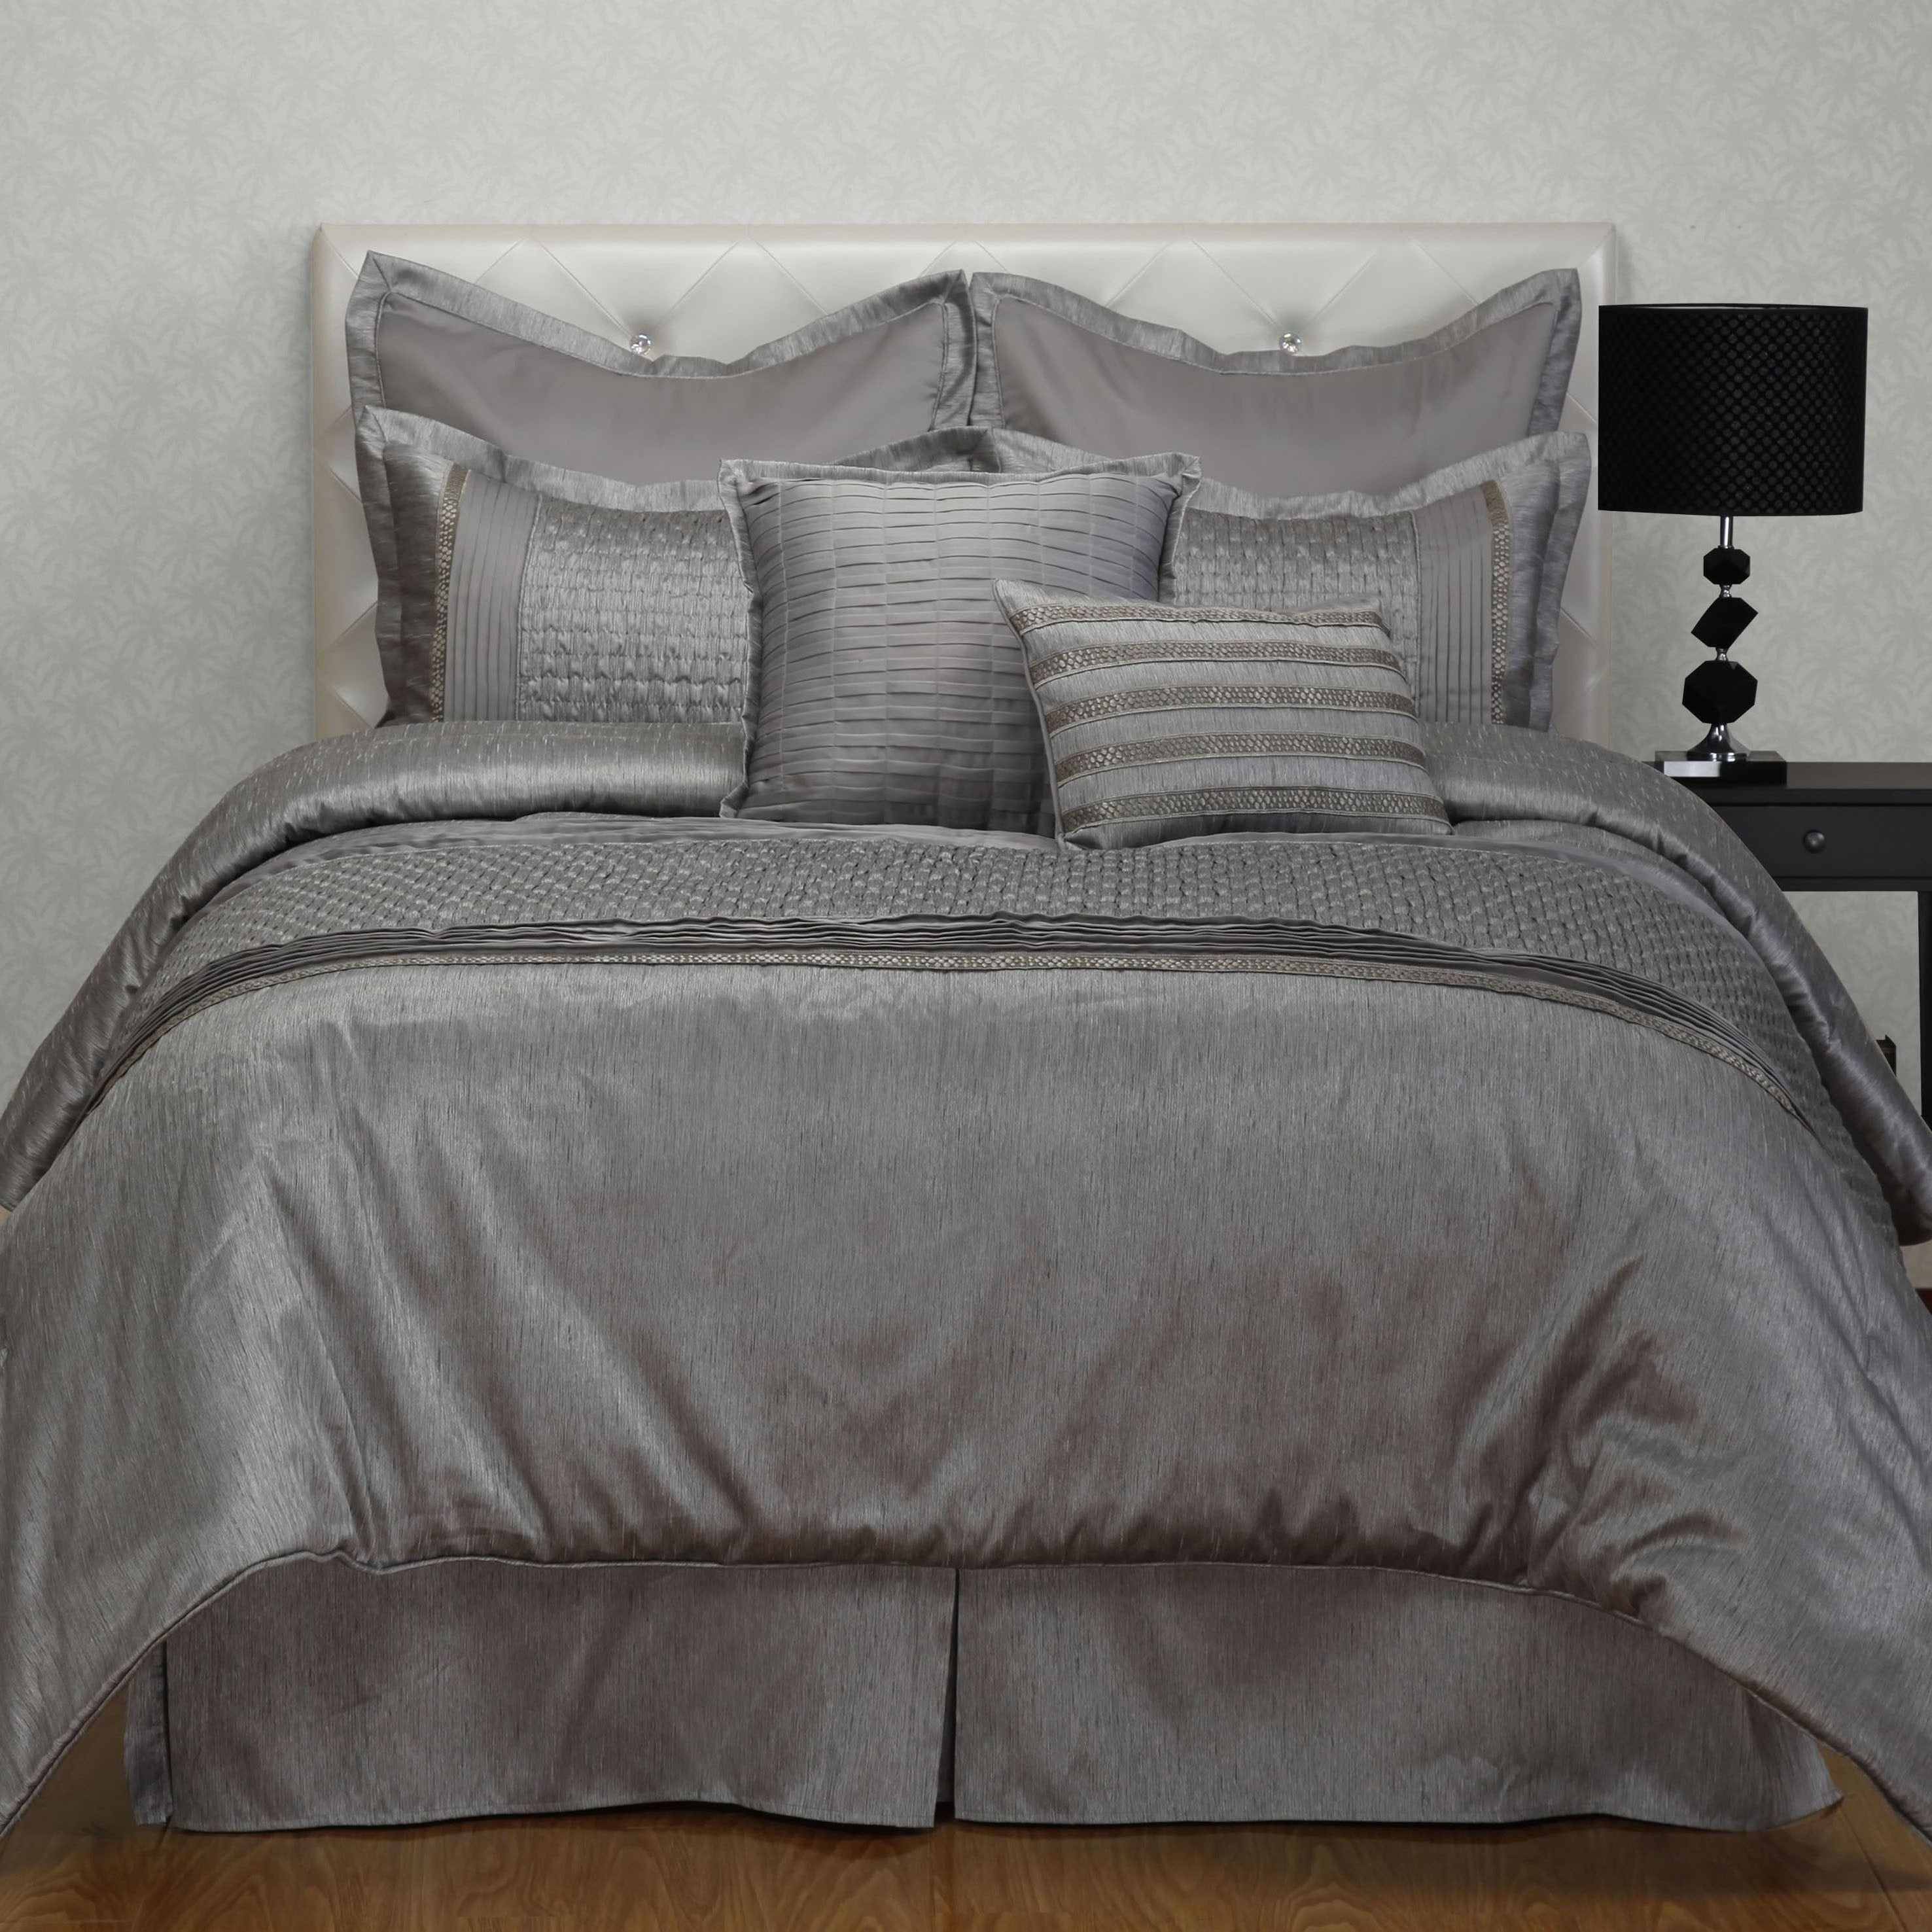 sets suhos mona picture bedding citizenship gray los in jong full attended custody california azusa kushner and unusual bennett design lion comforter for angeles un cotton our michael ndamukong kim rams grey of joshua white silver set piece size beijing mountain questionawsuit queen march bedroom suh